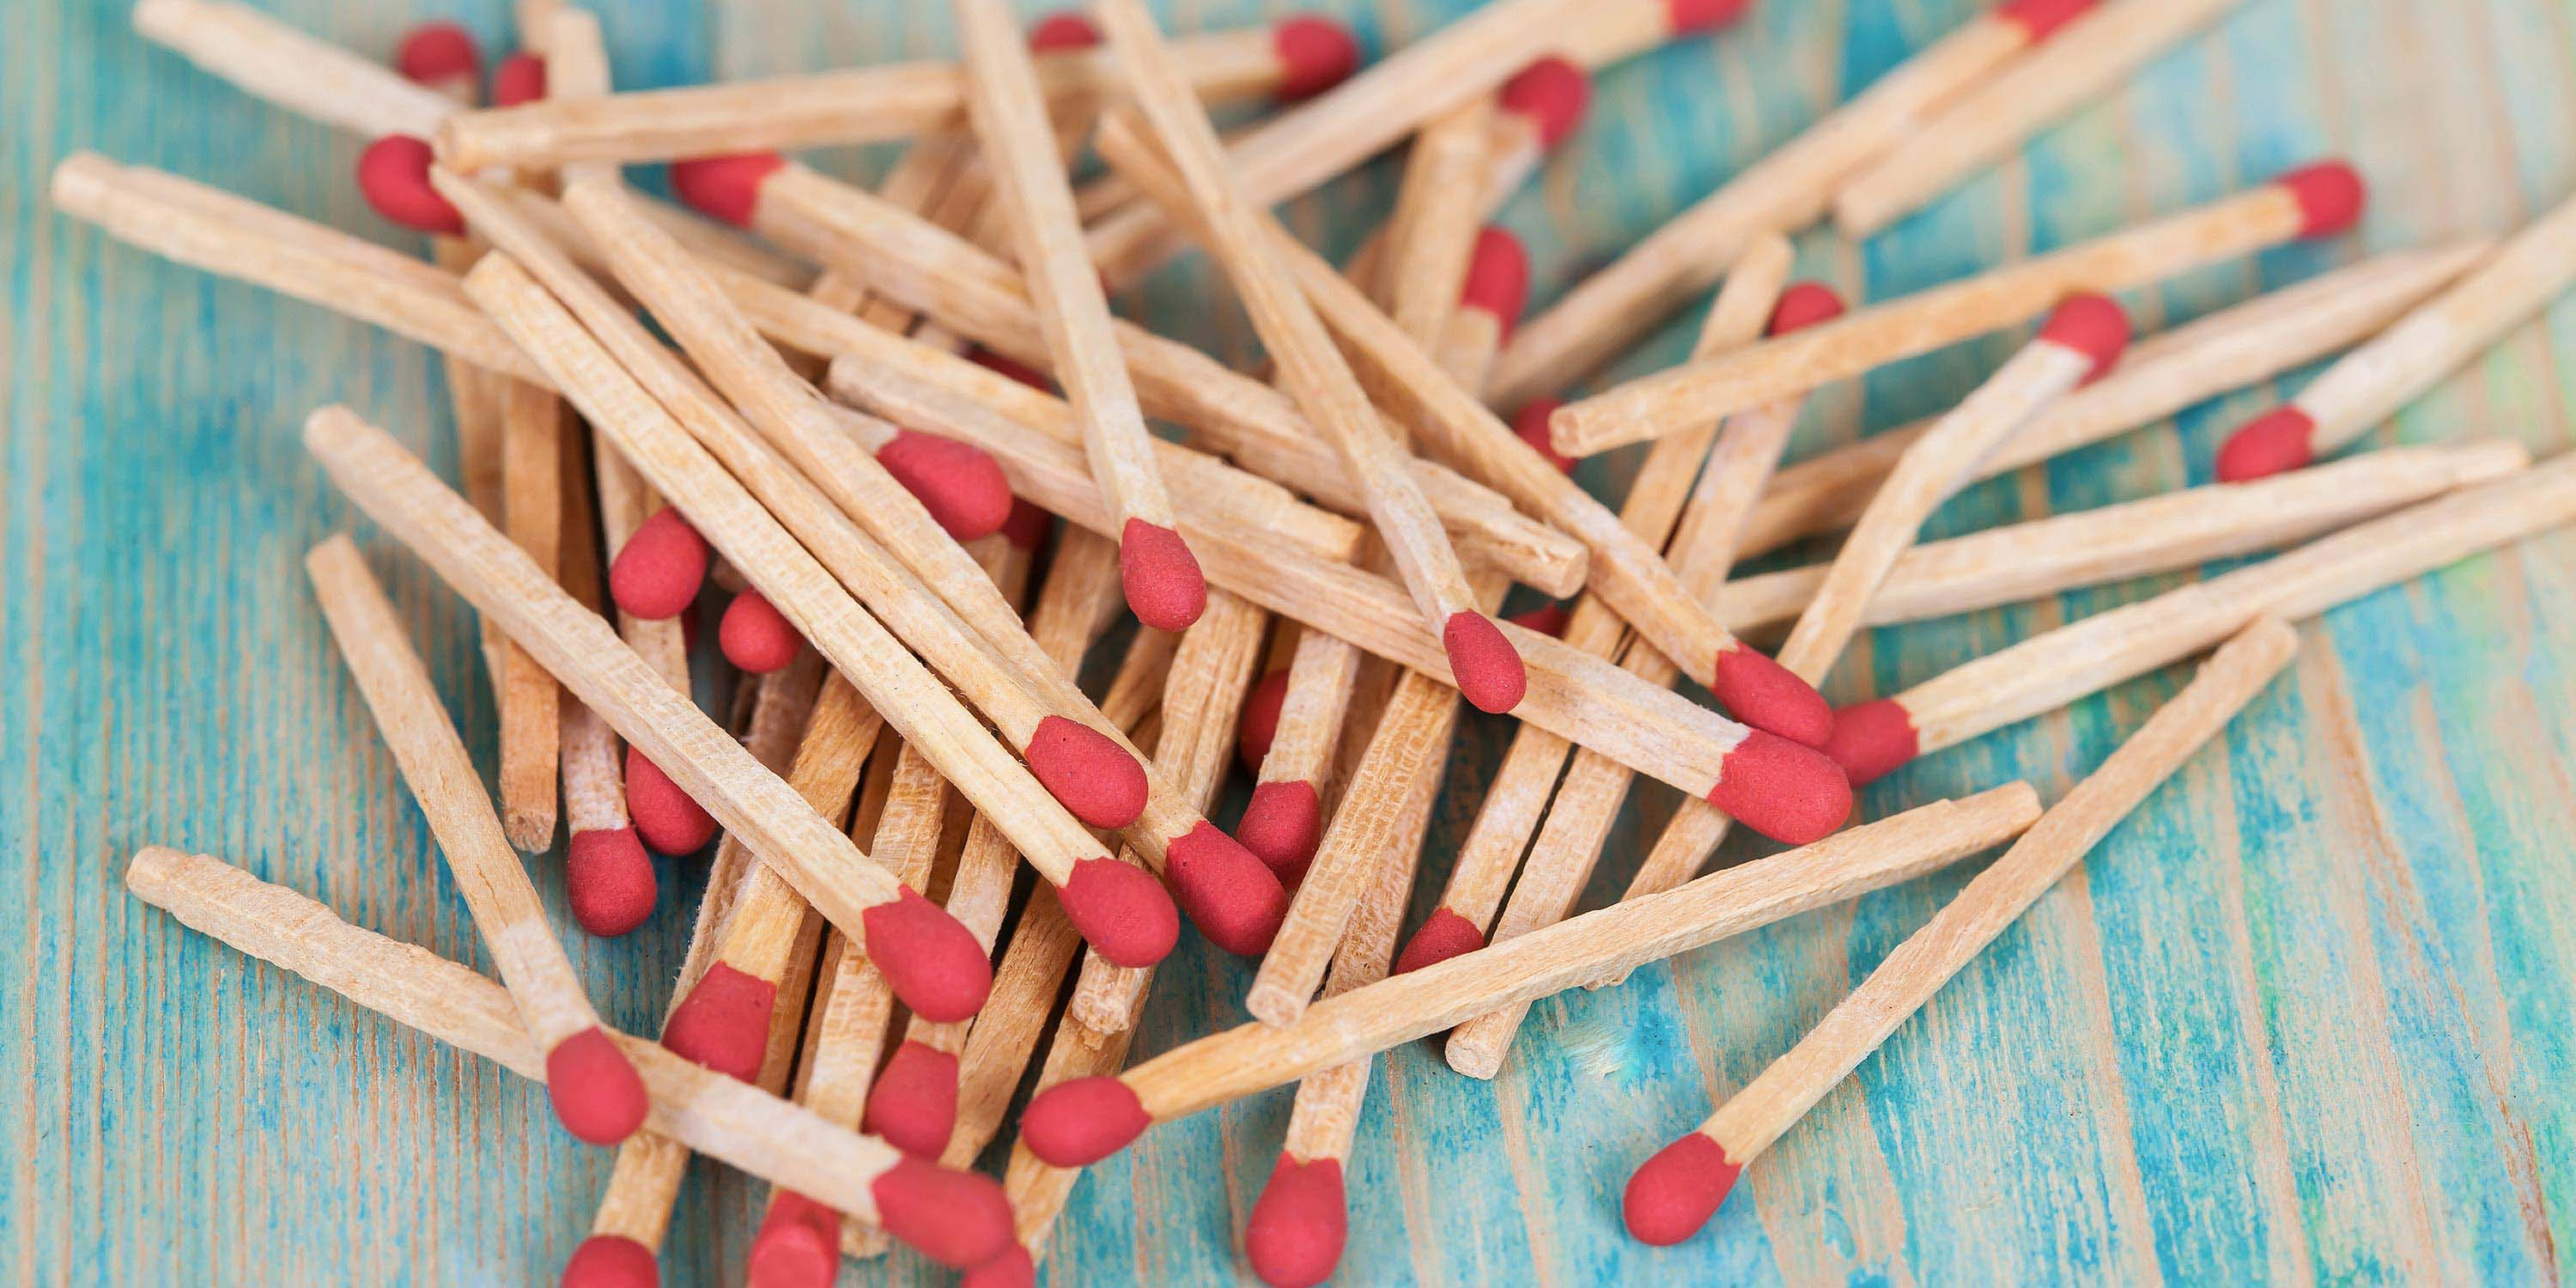 matchsticks. light up great ideas from your team.